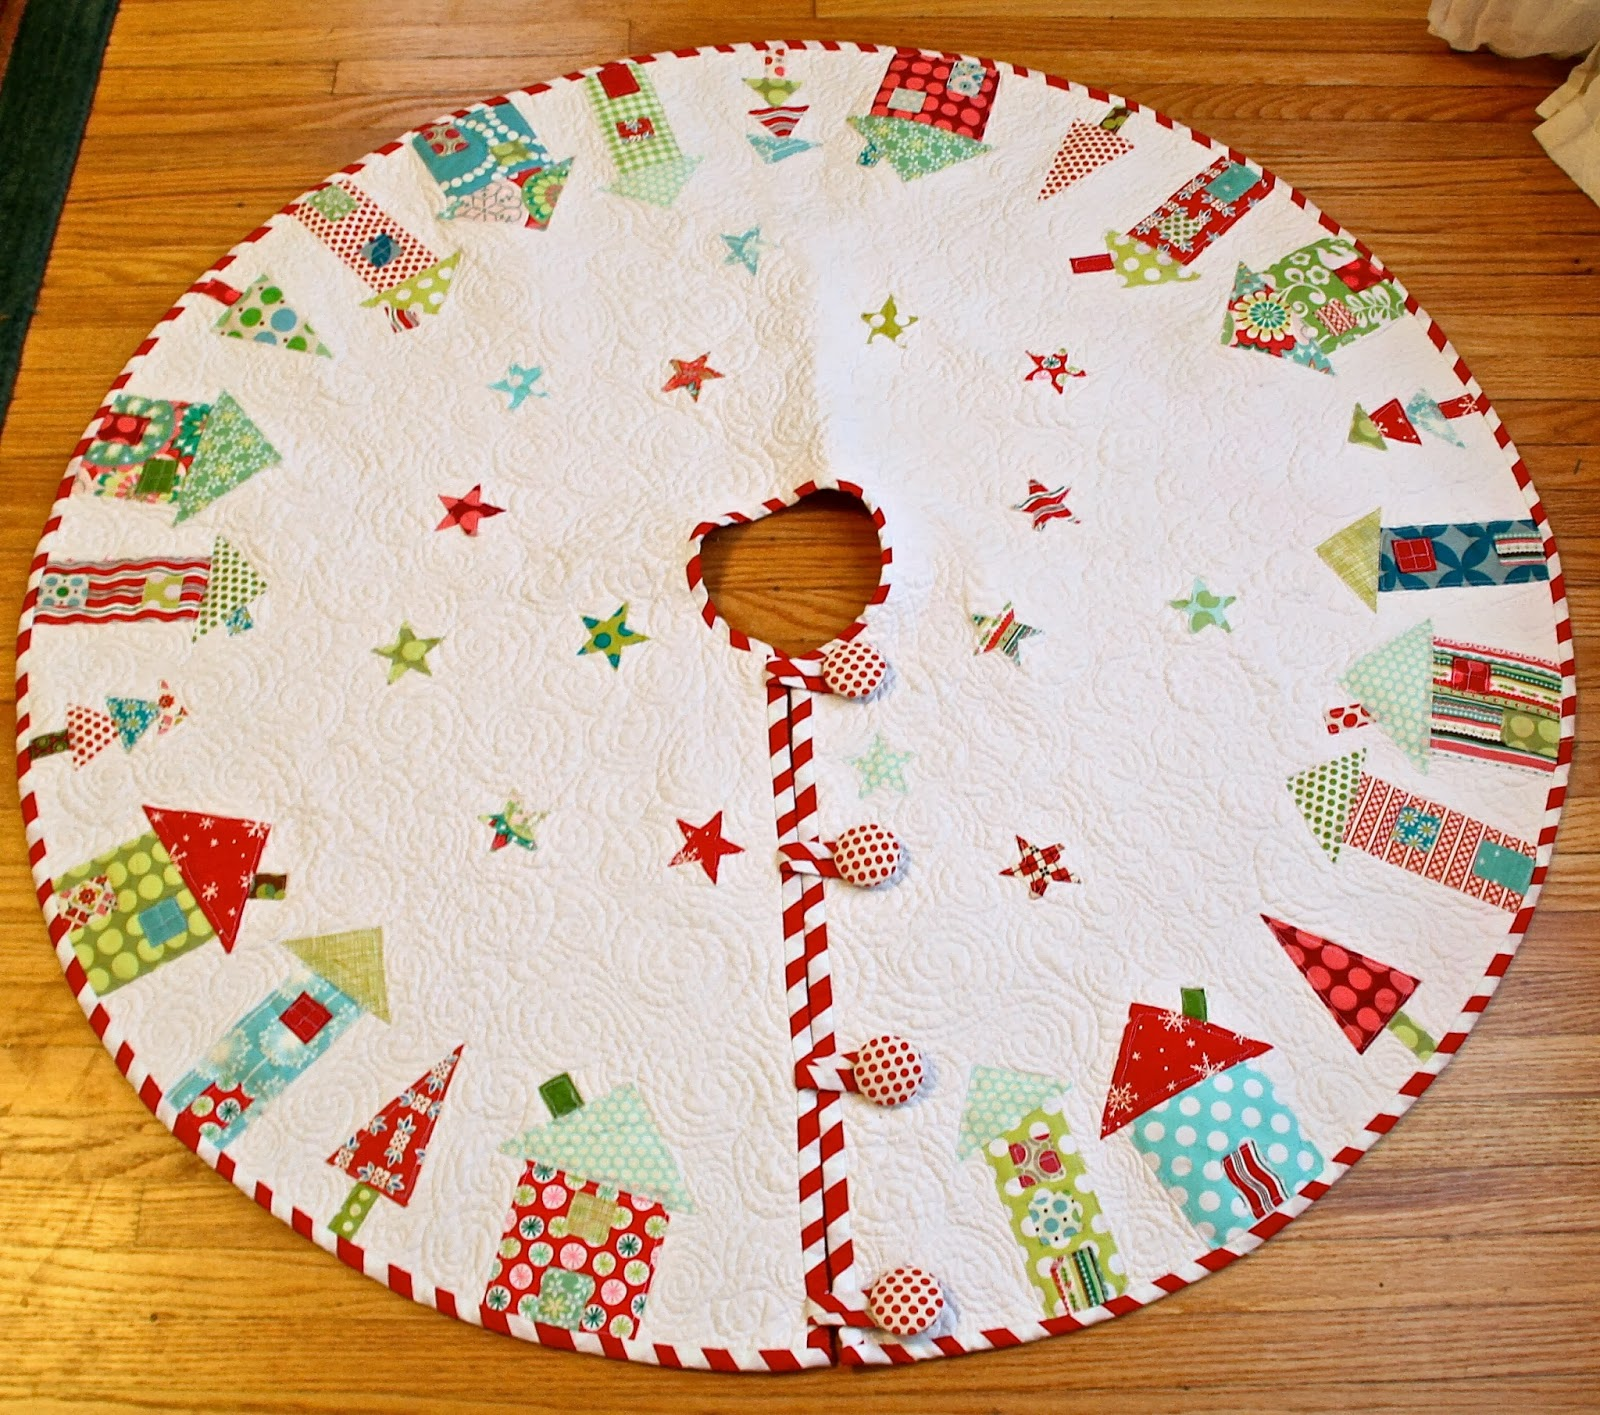 Quilted Christmas Tree Skirt Patterns: Quilted Christmas Tree Skirt Tutorials I Want To Try